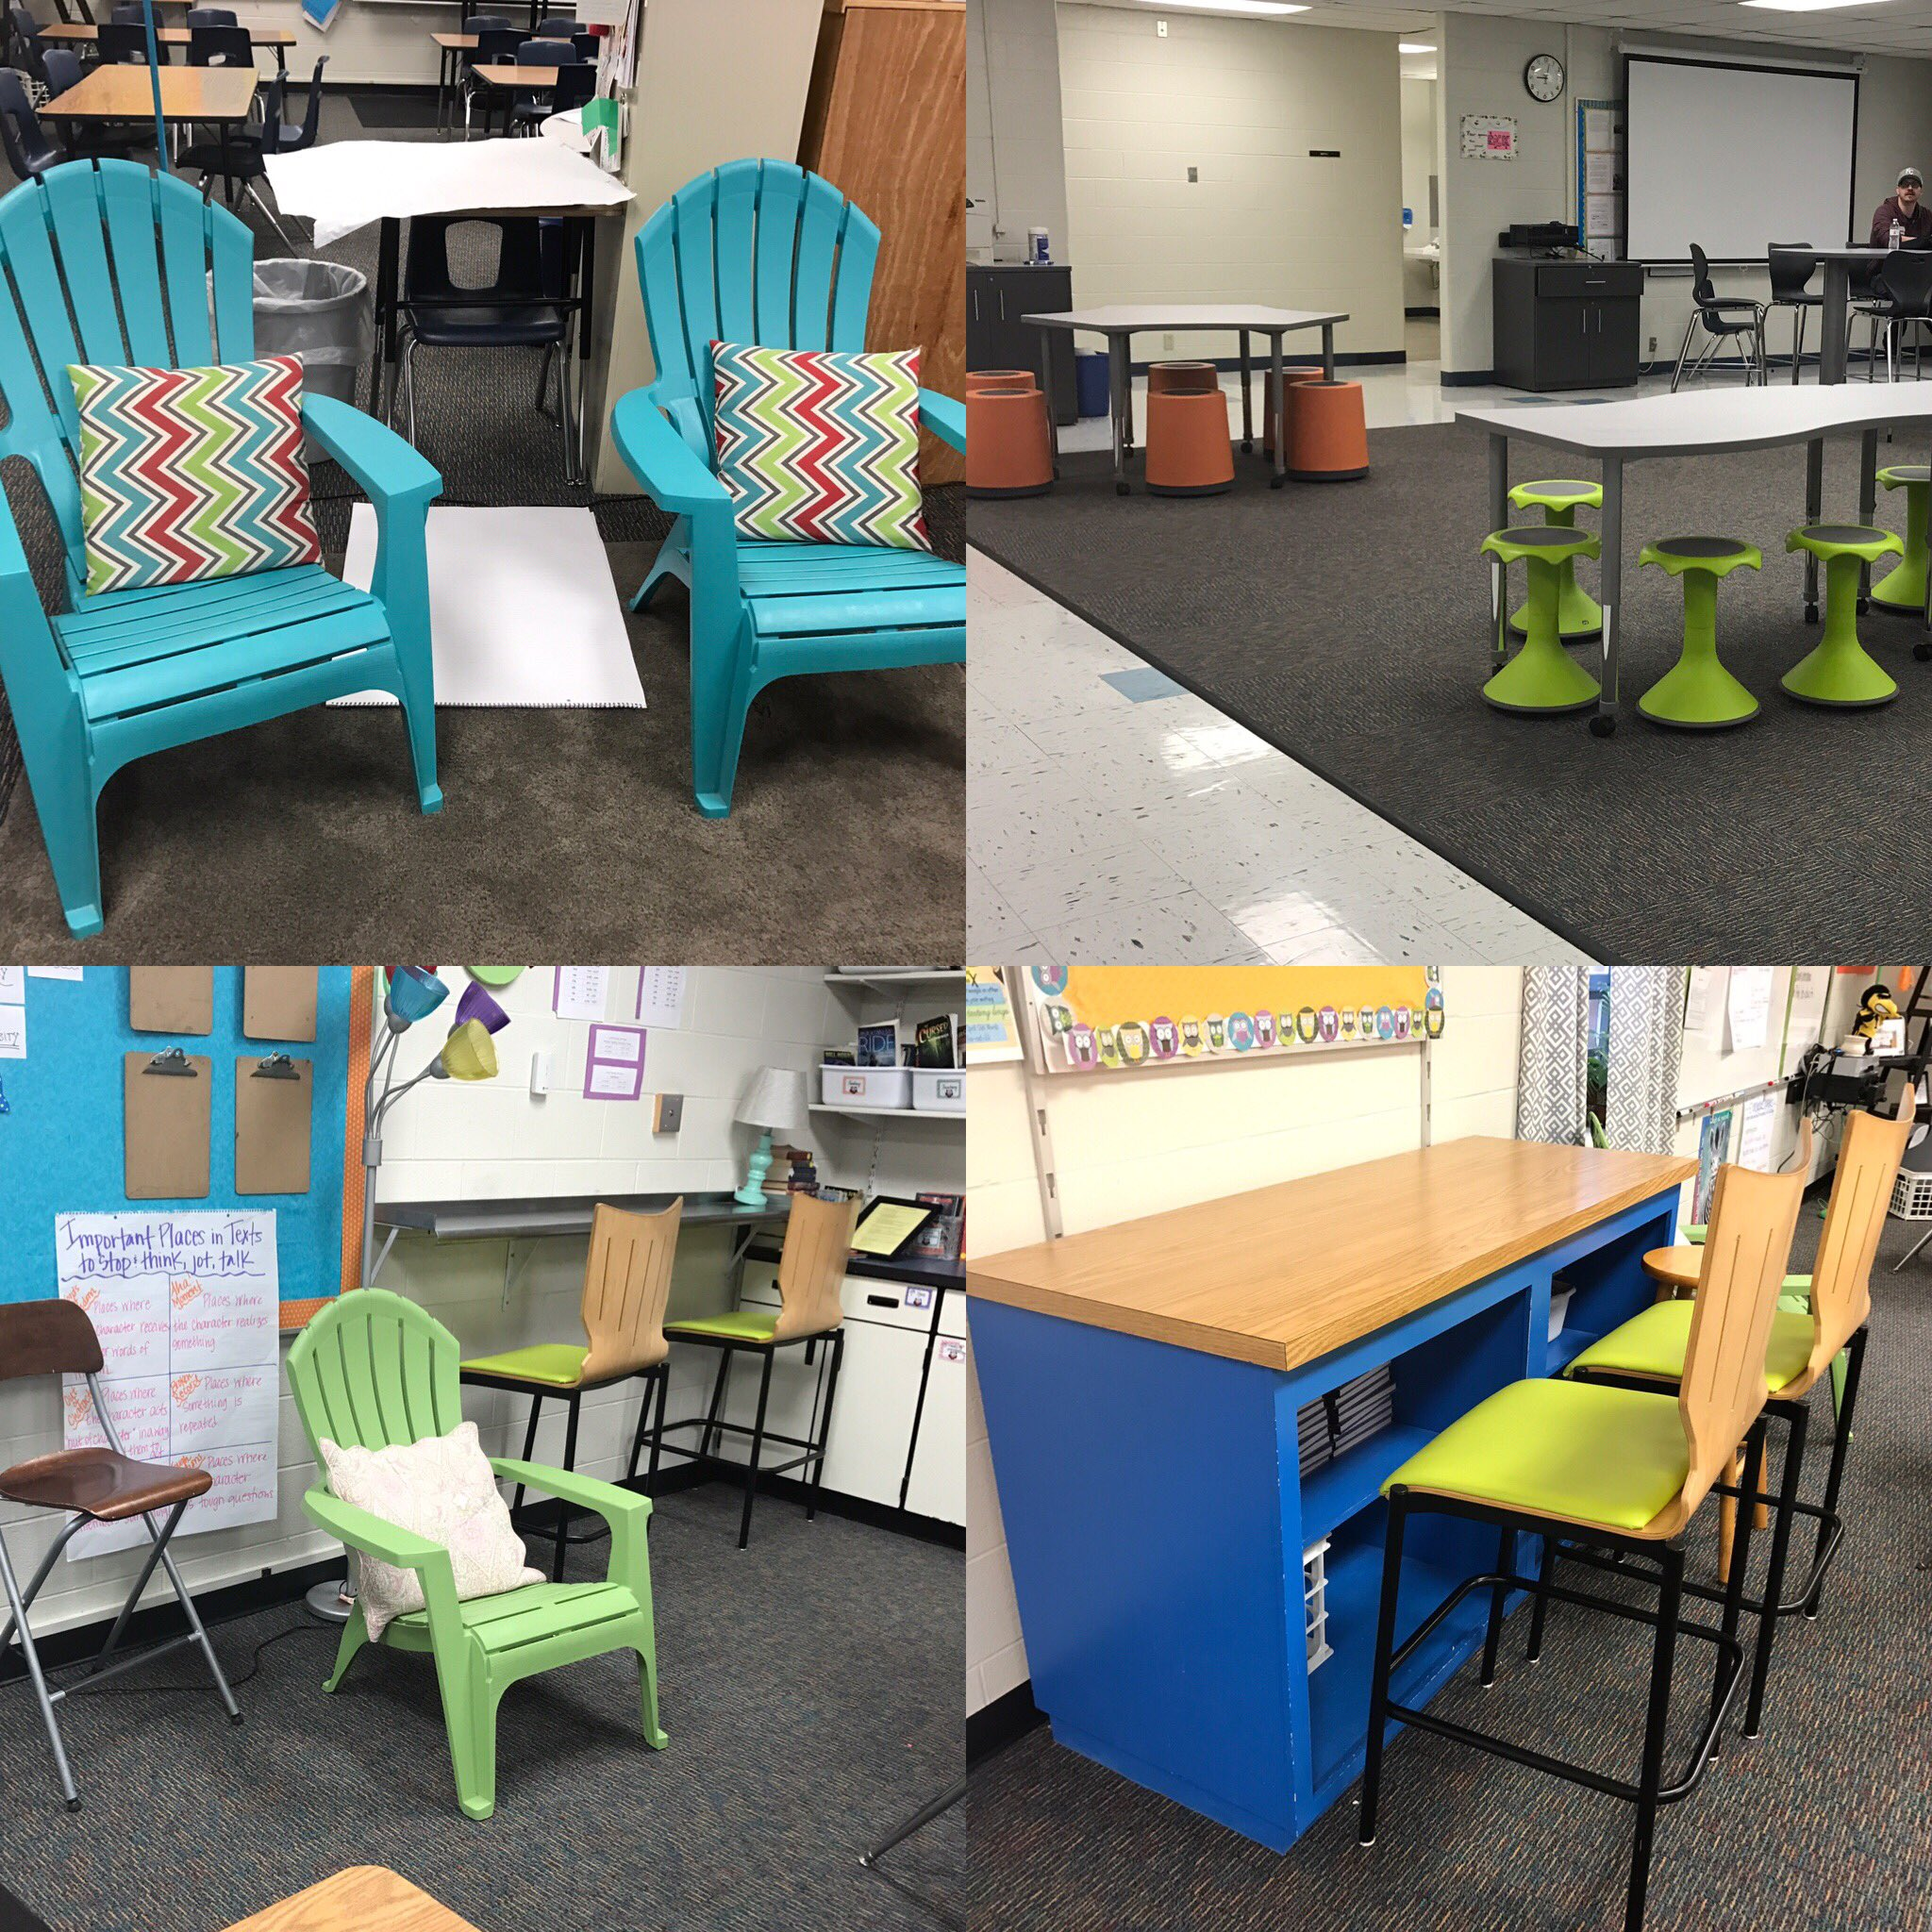 Loving all the #flexibleseating options at #edcampliberty today! https://t.co/u50HYL21GE